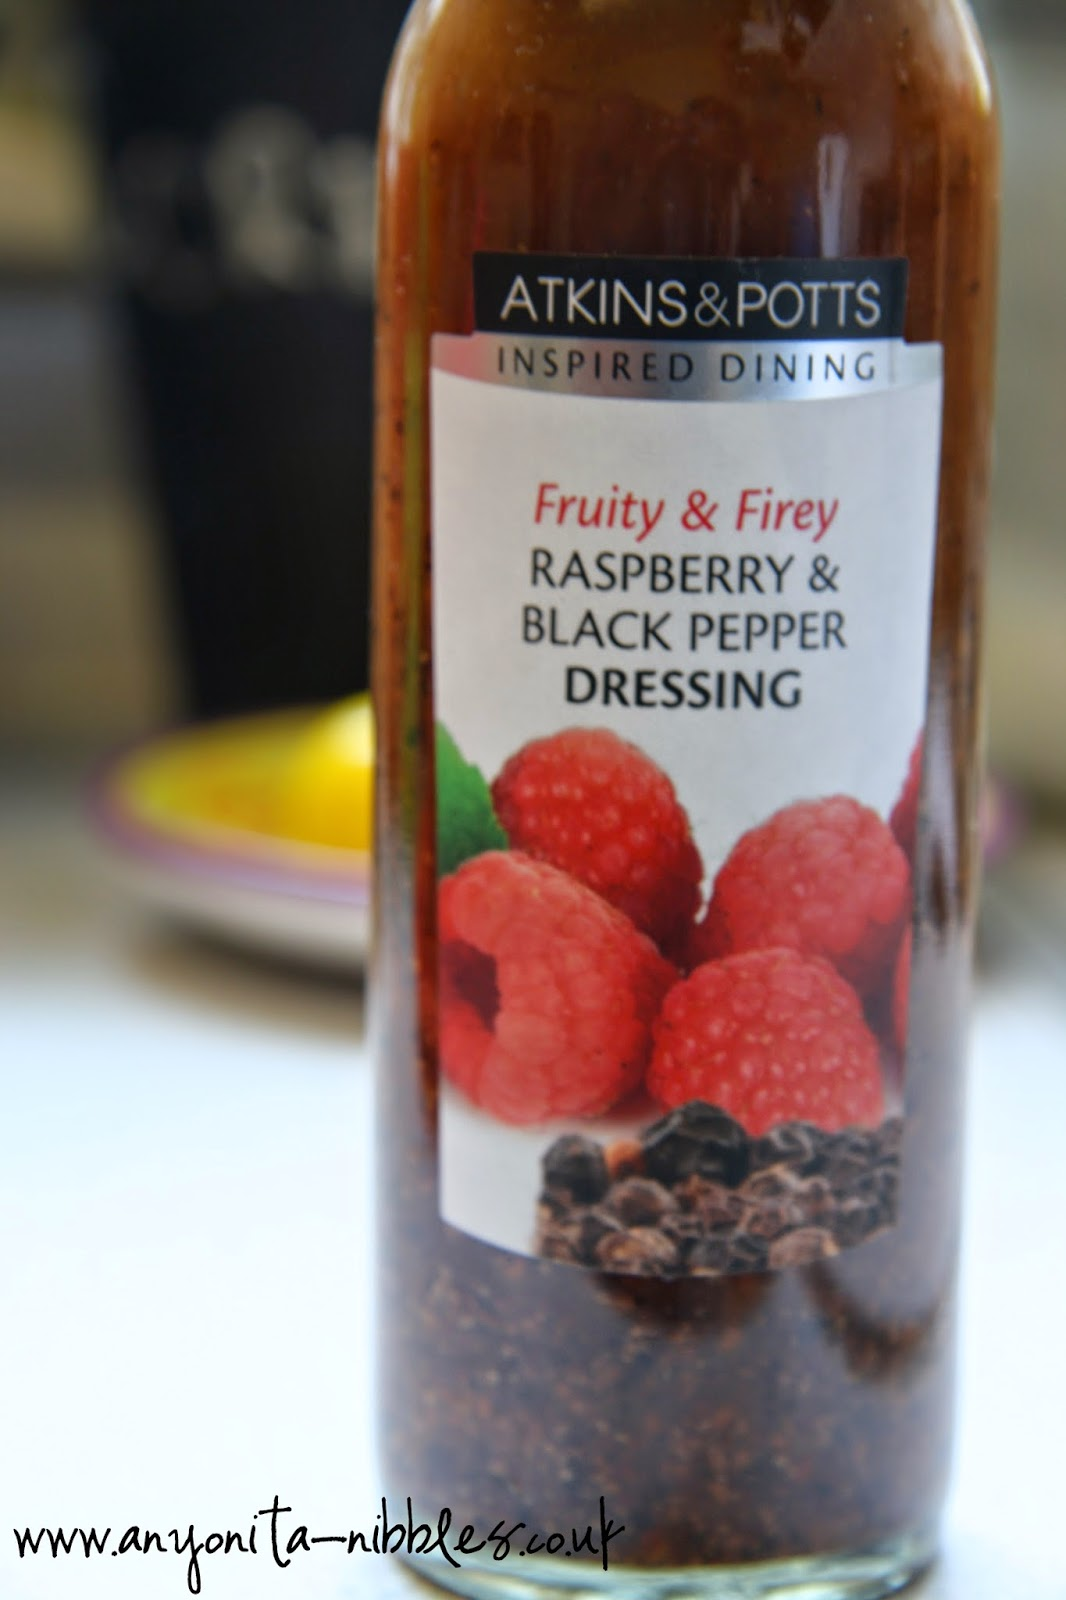 Atkins & Potts Fruity & Fiery Dressing from www.anyonita-nibbles.co.uk